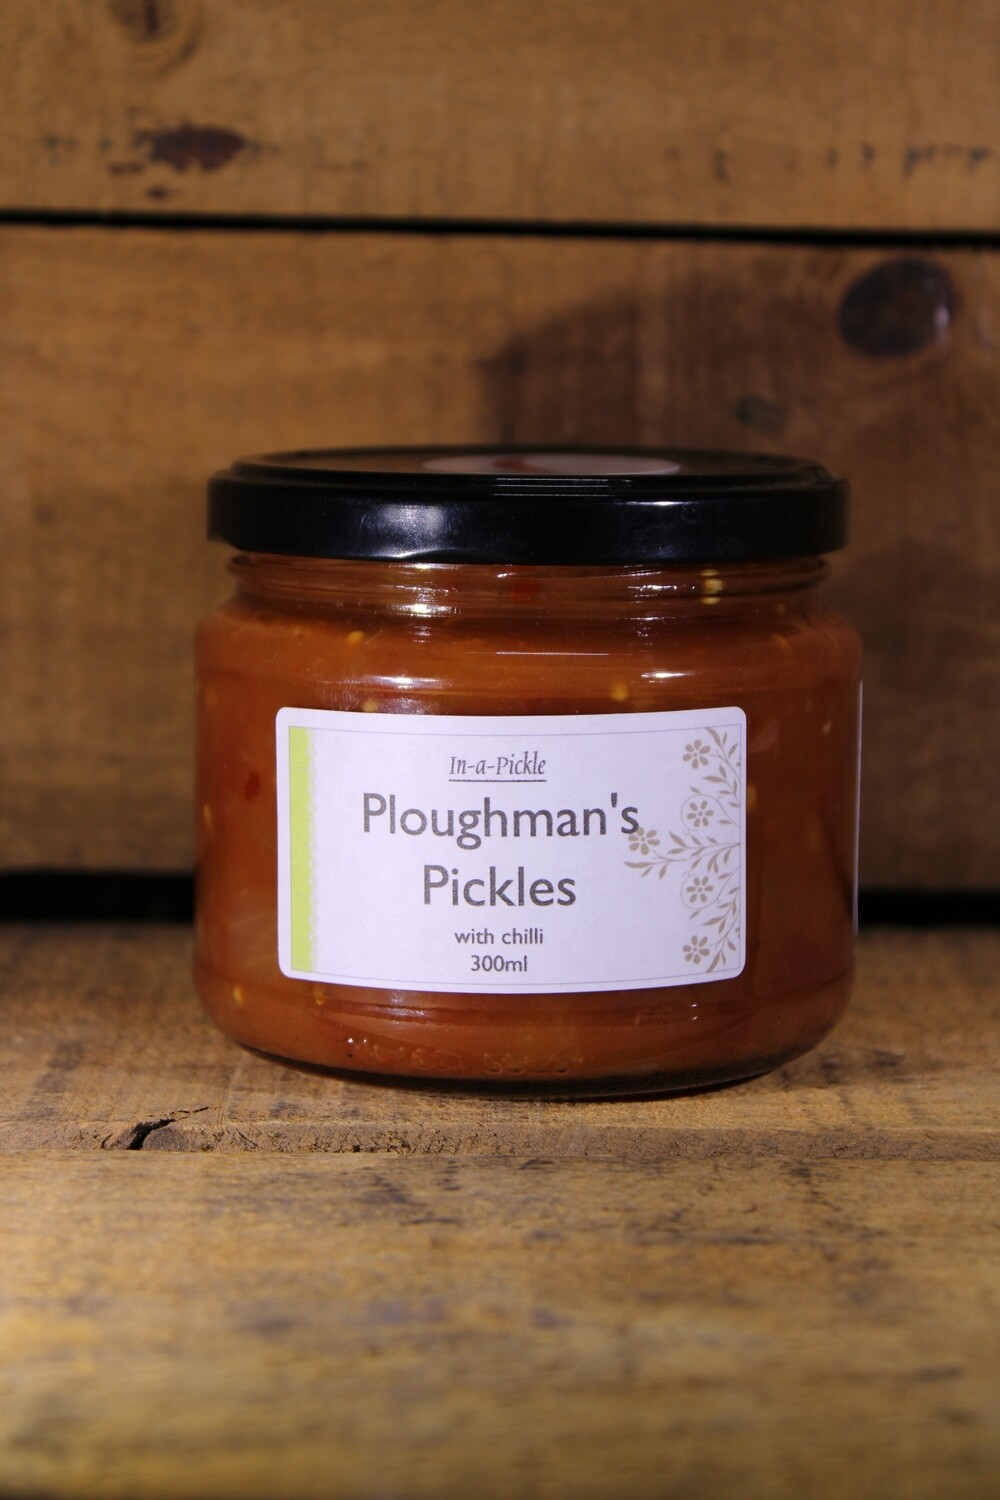 Ploughman's Pickles with Chilli